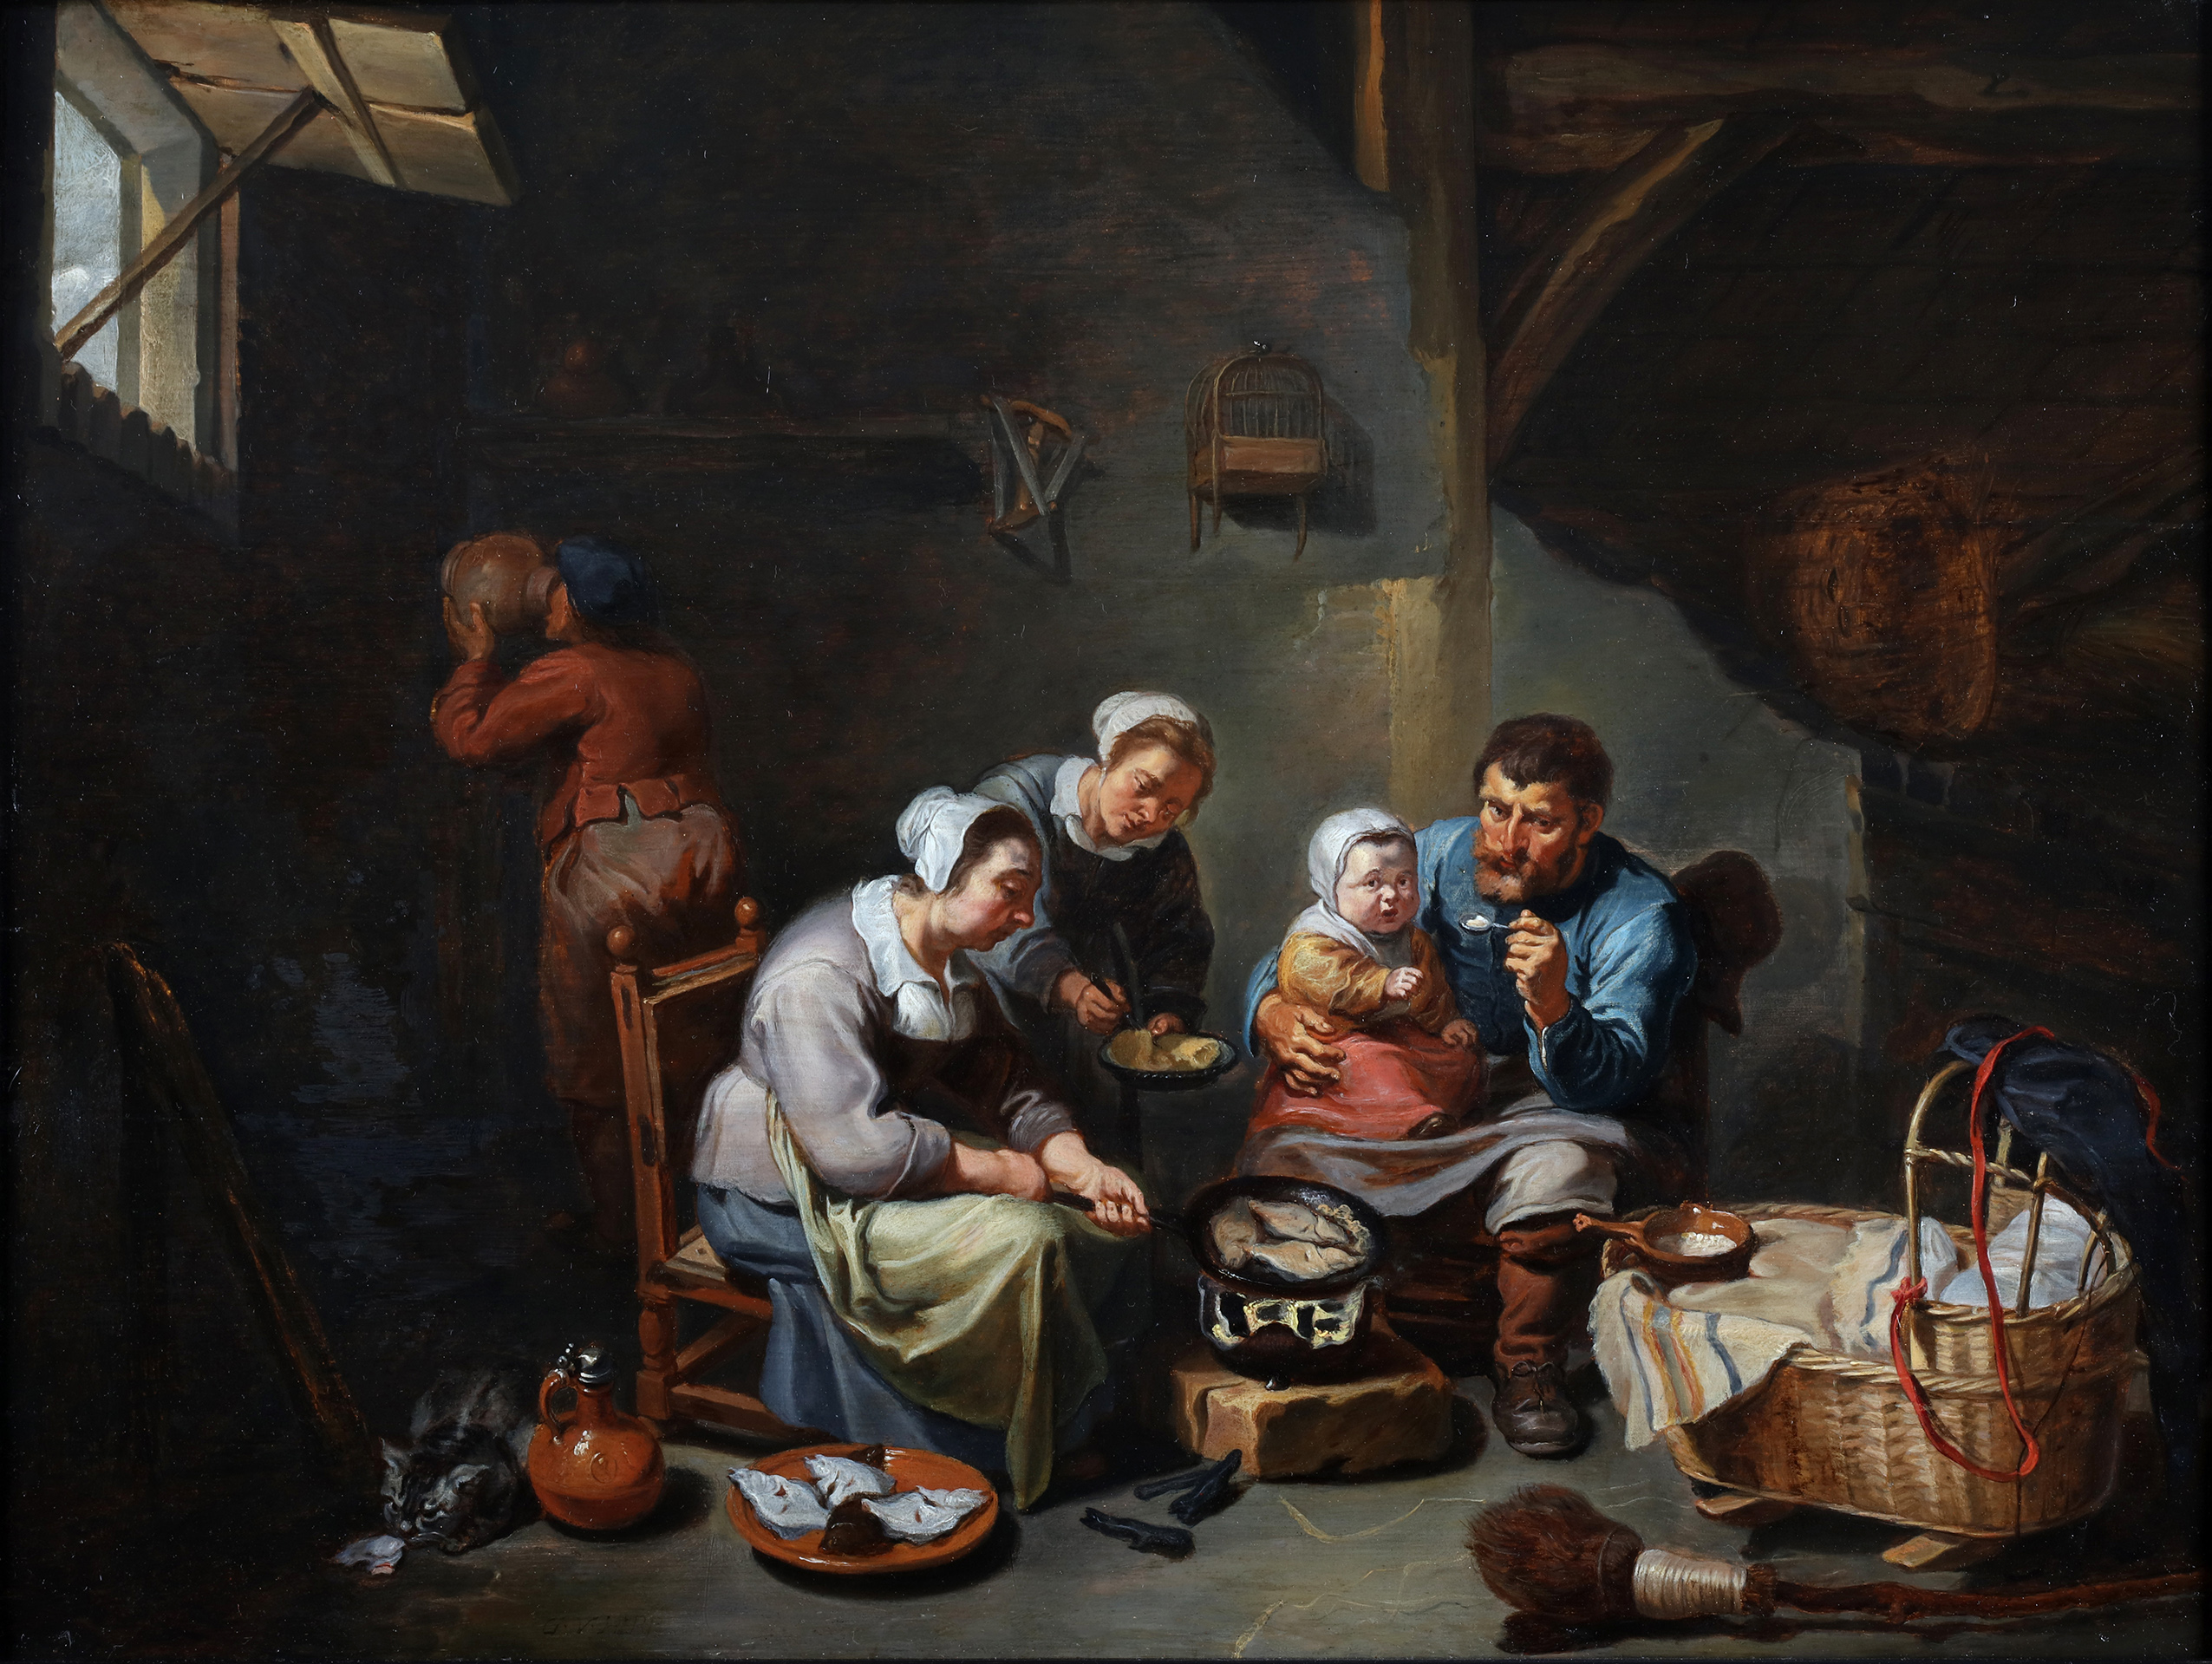 Interior with a peasant family frying fish